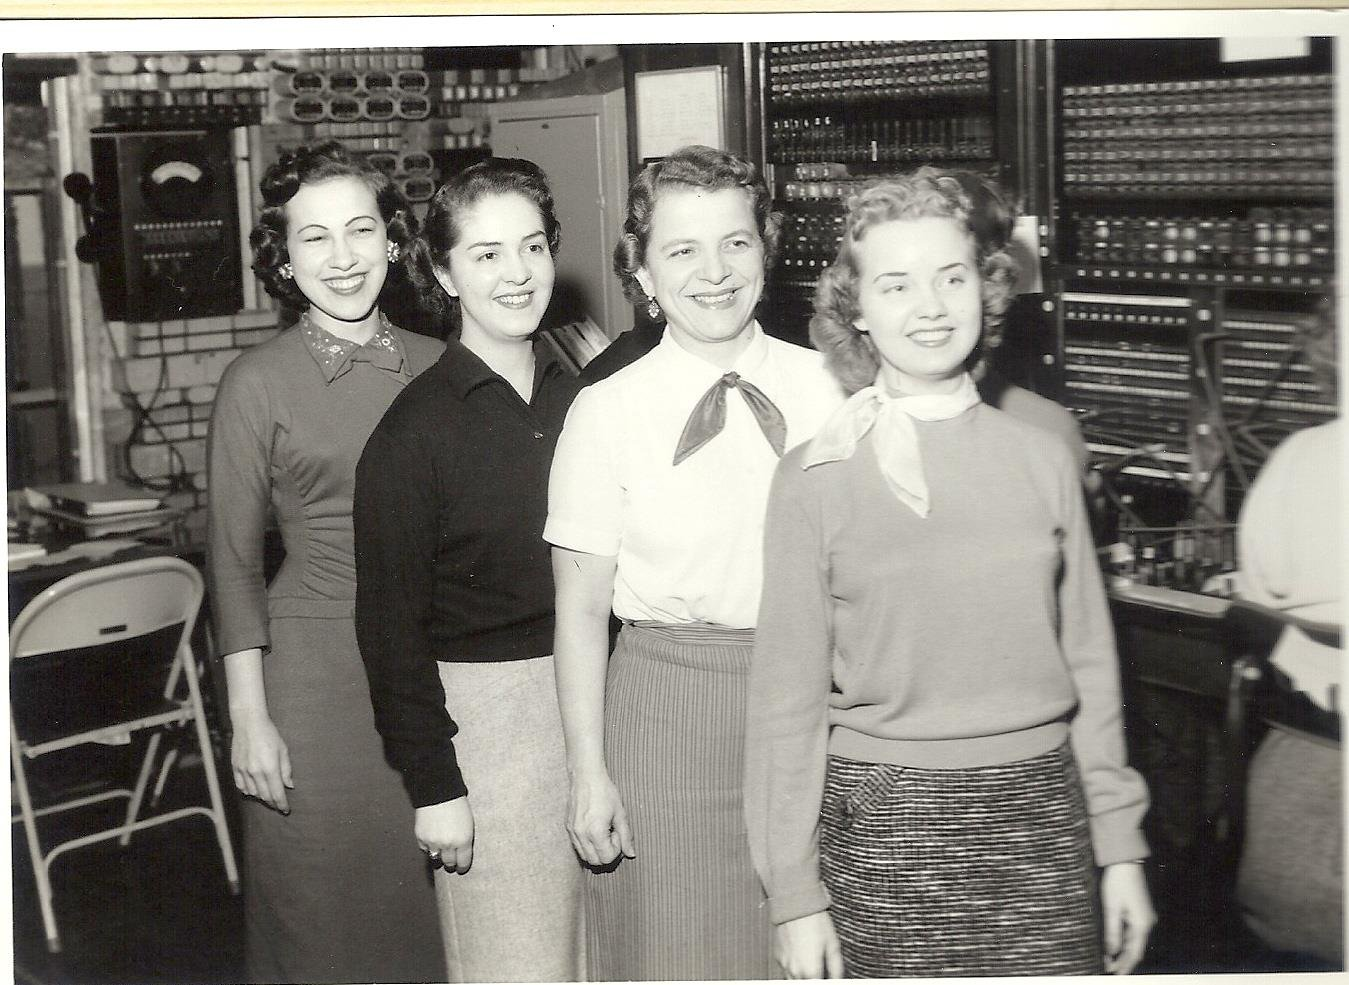 Mt.Hope Telephone Switchboard office was located on the second floor of the First National Bank building. As seen in image , Susan Spade in the white blouse  and Dixie Painter is in the black top,